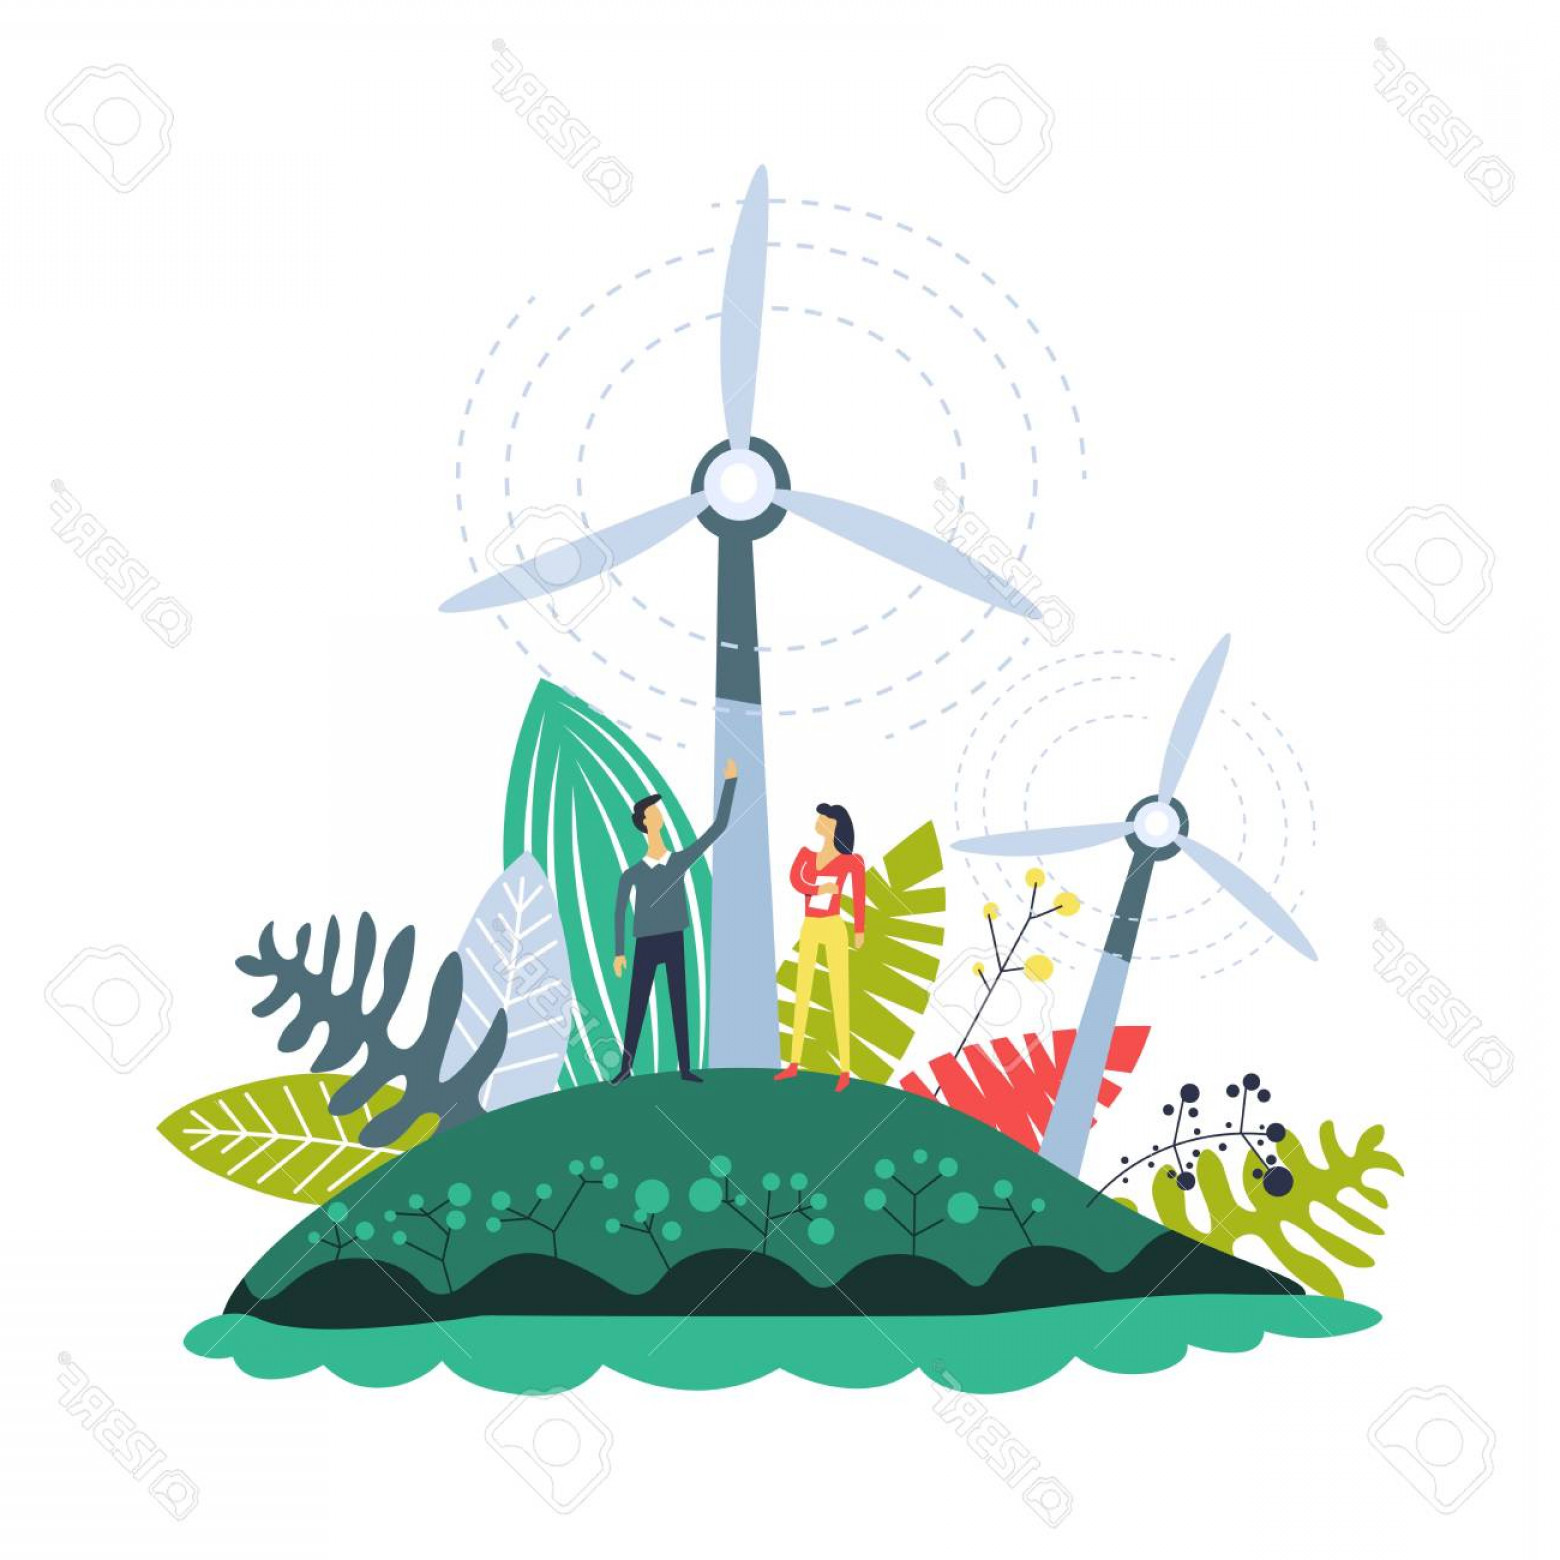 Wind Vector Field: Photostock Vector Wind Energy Plantations Windmills And Plants Set Vector People On Field With Generators With Propell